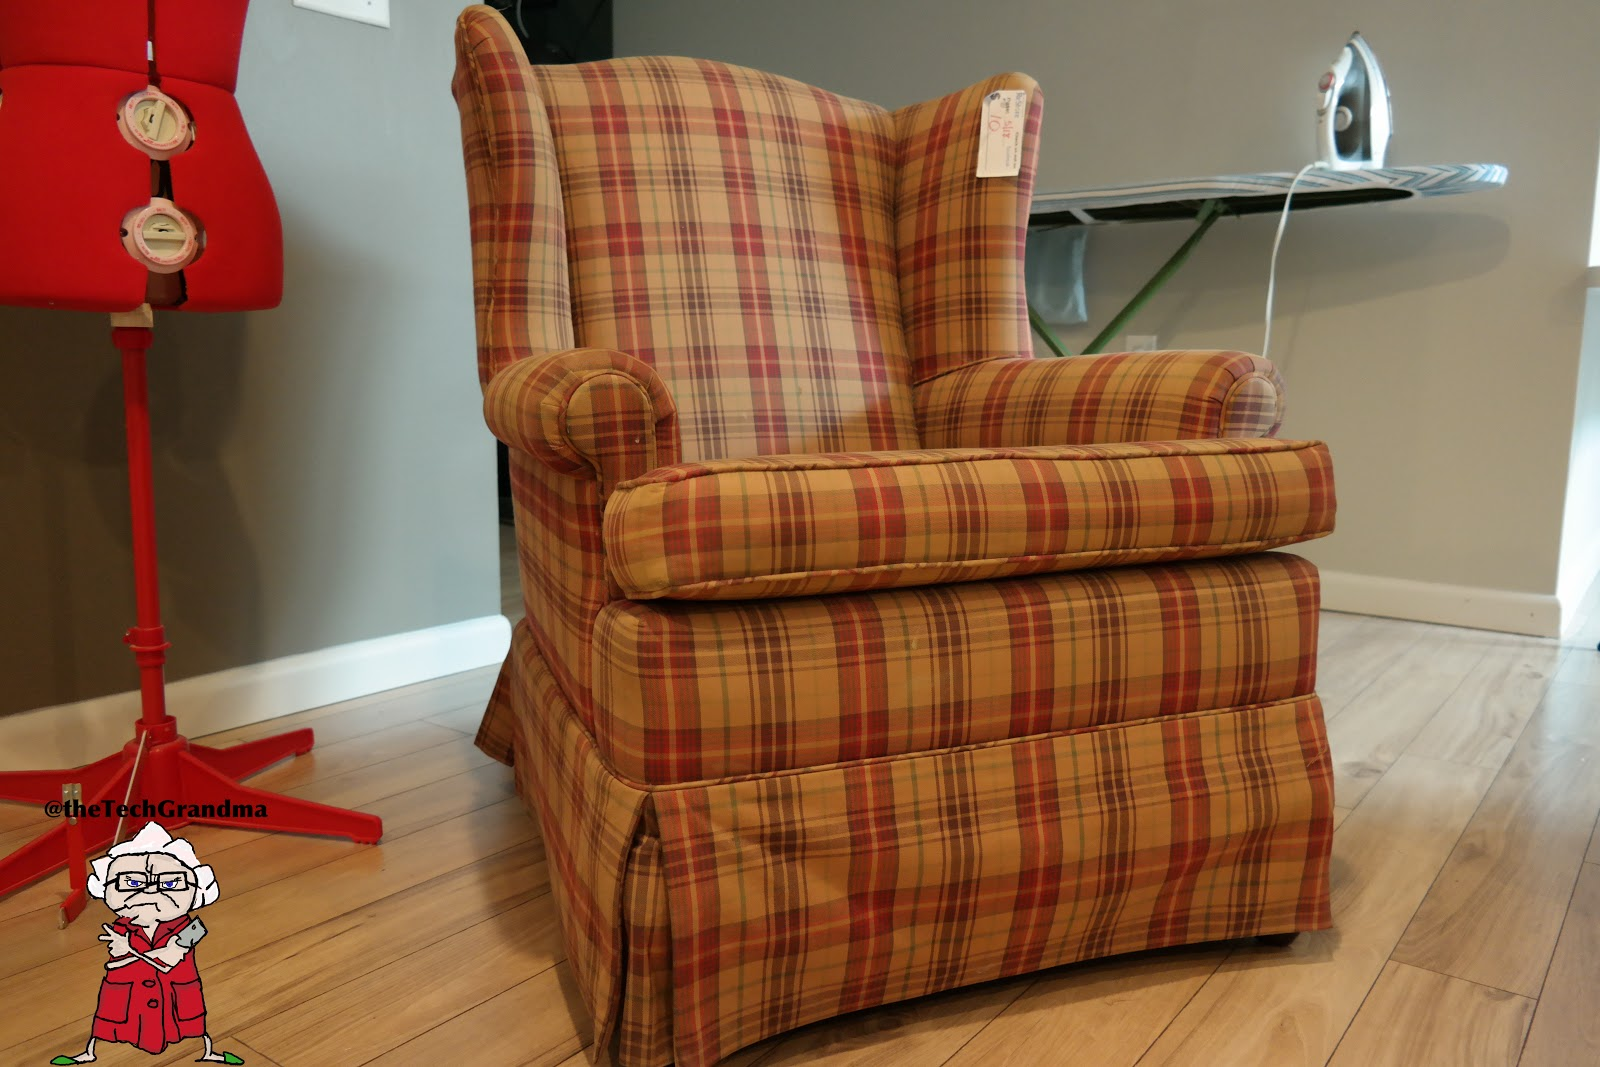 Should I Buy New Furniture For The Upstairs And Move The Old Stuff  Downstairs? When I Looked At The Cost Of New Furniture, I Felt Queasy.